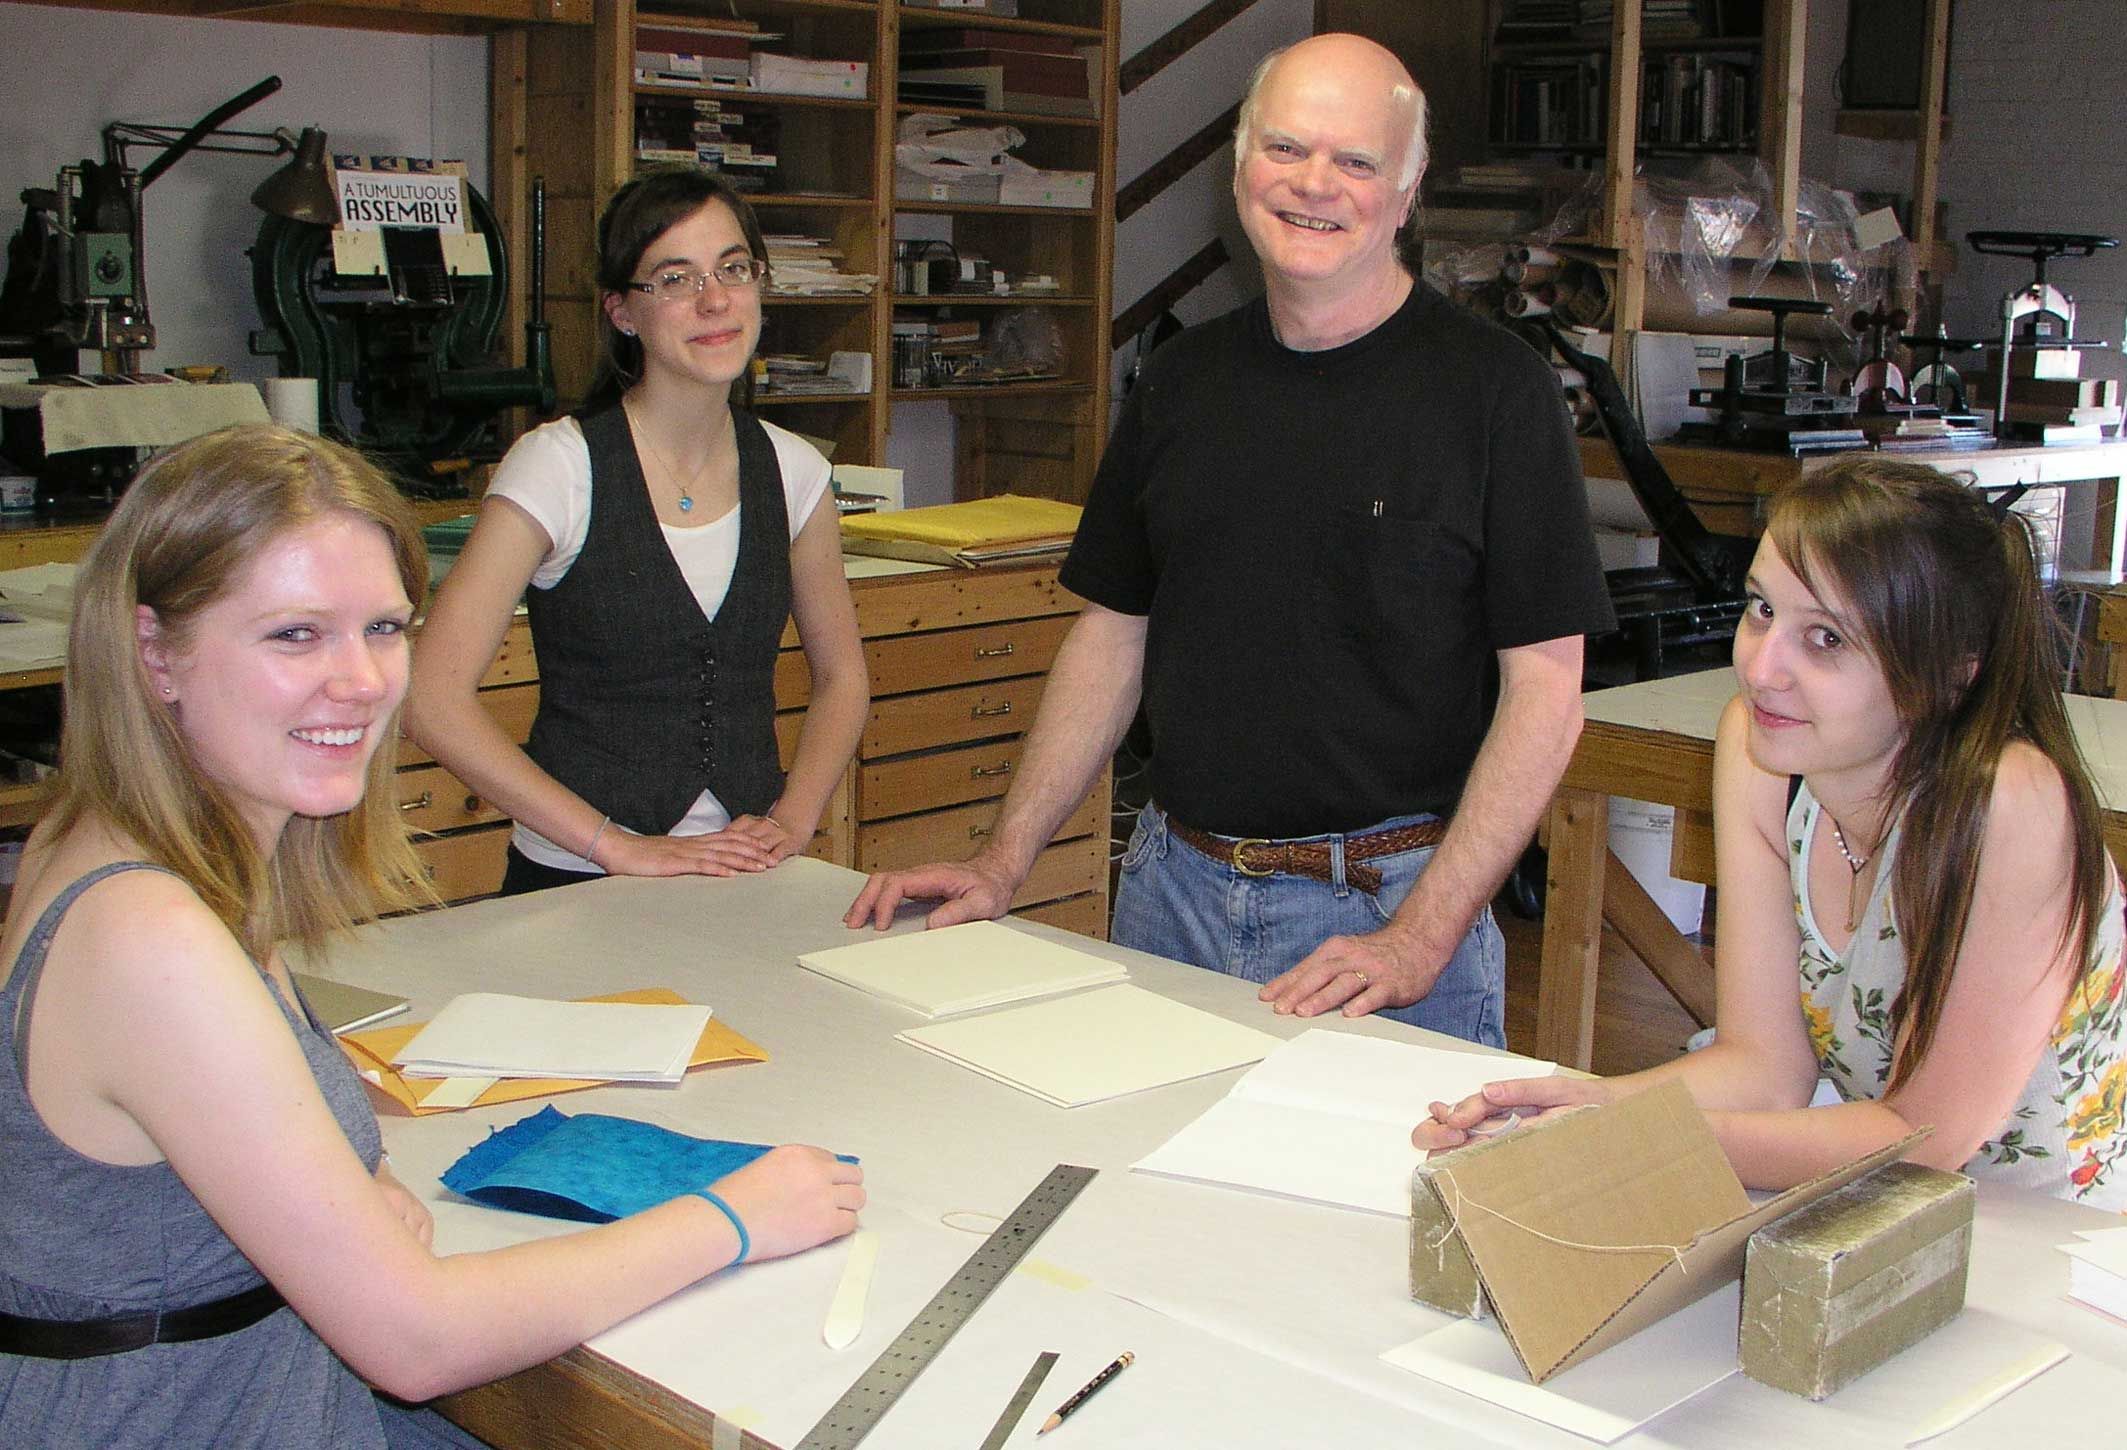 Many area college students have been welcomed to the studio for internships and for help with their book projects.